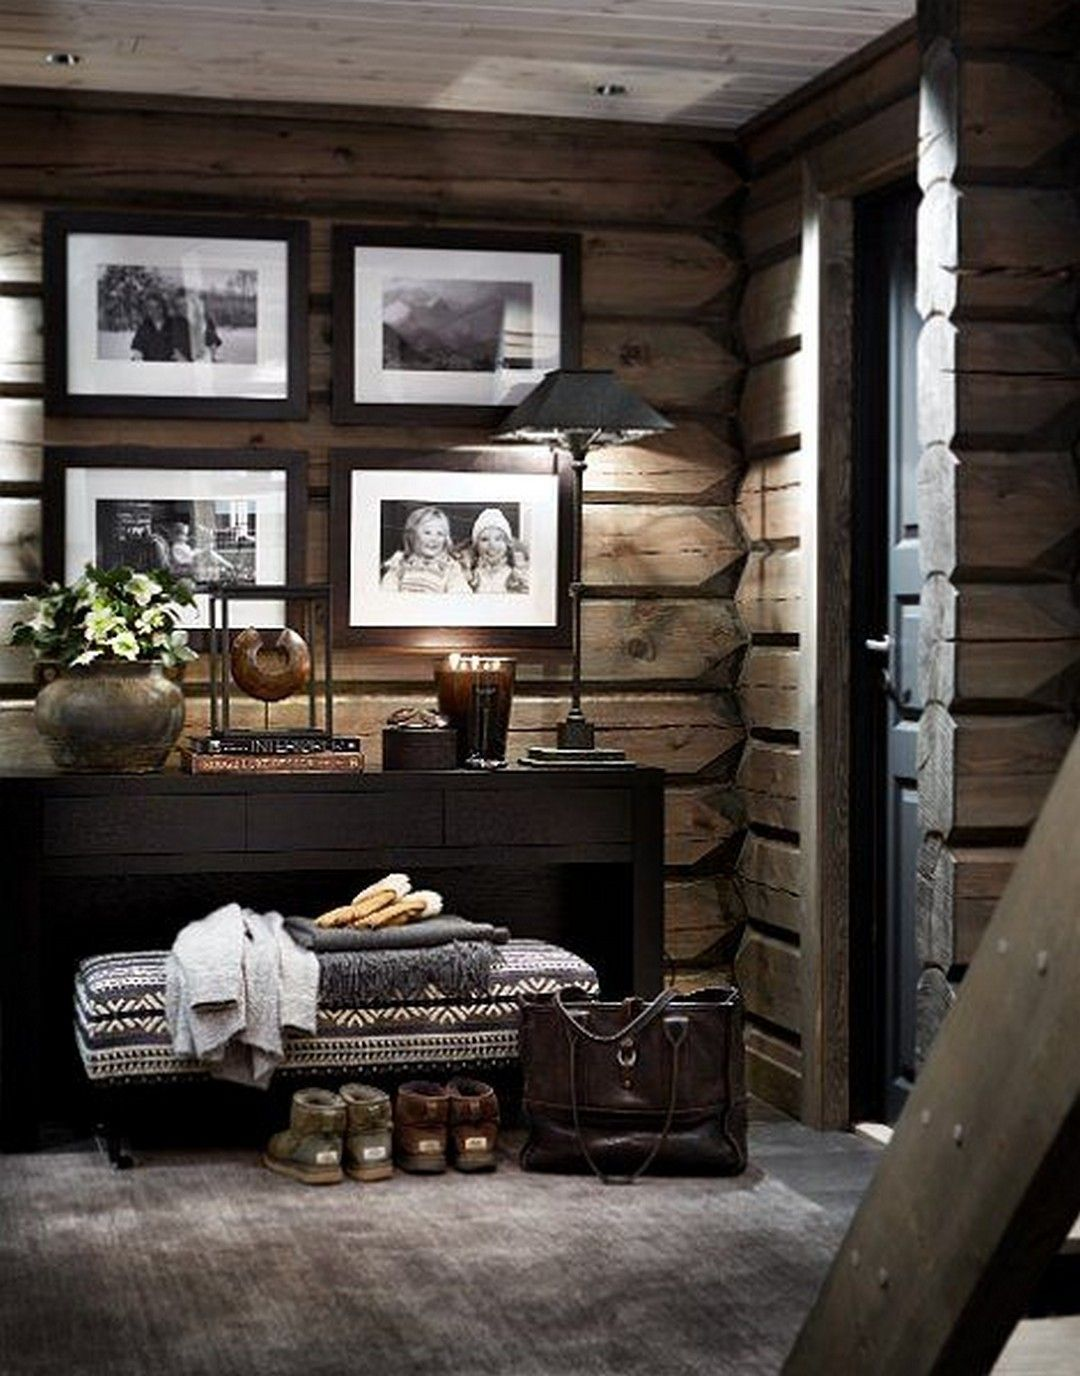 52 Modern Cozy Mountain Home Design Ideas | Pinterest | Cozy, Modern ...